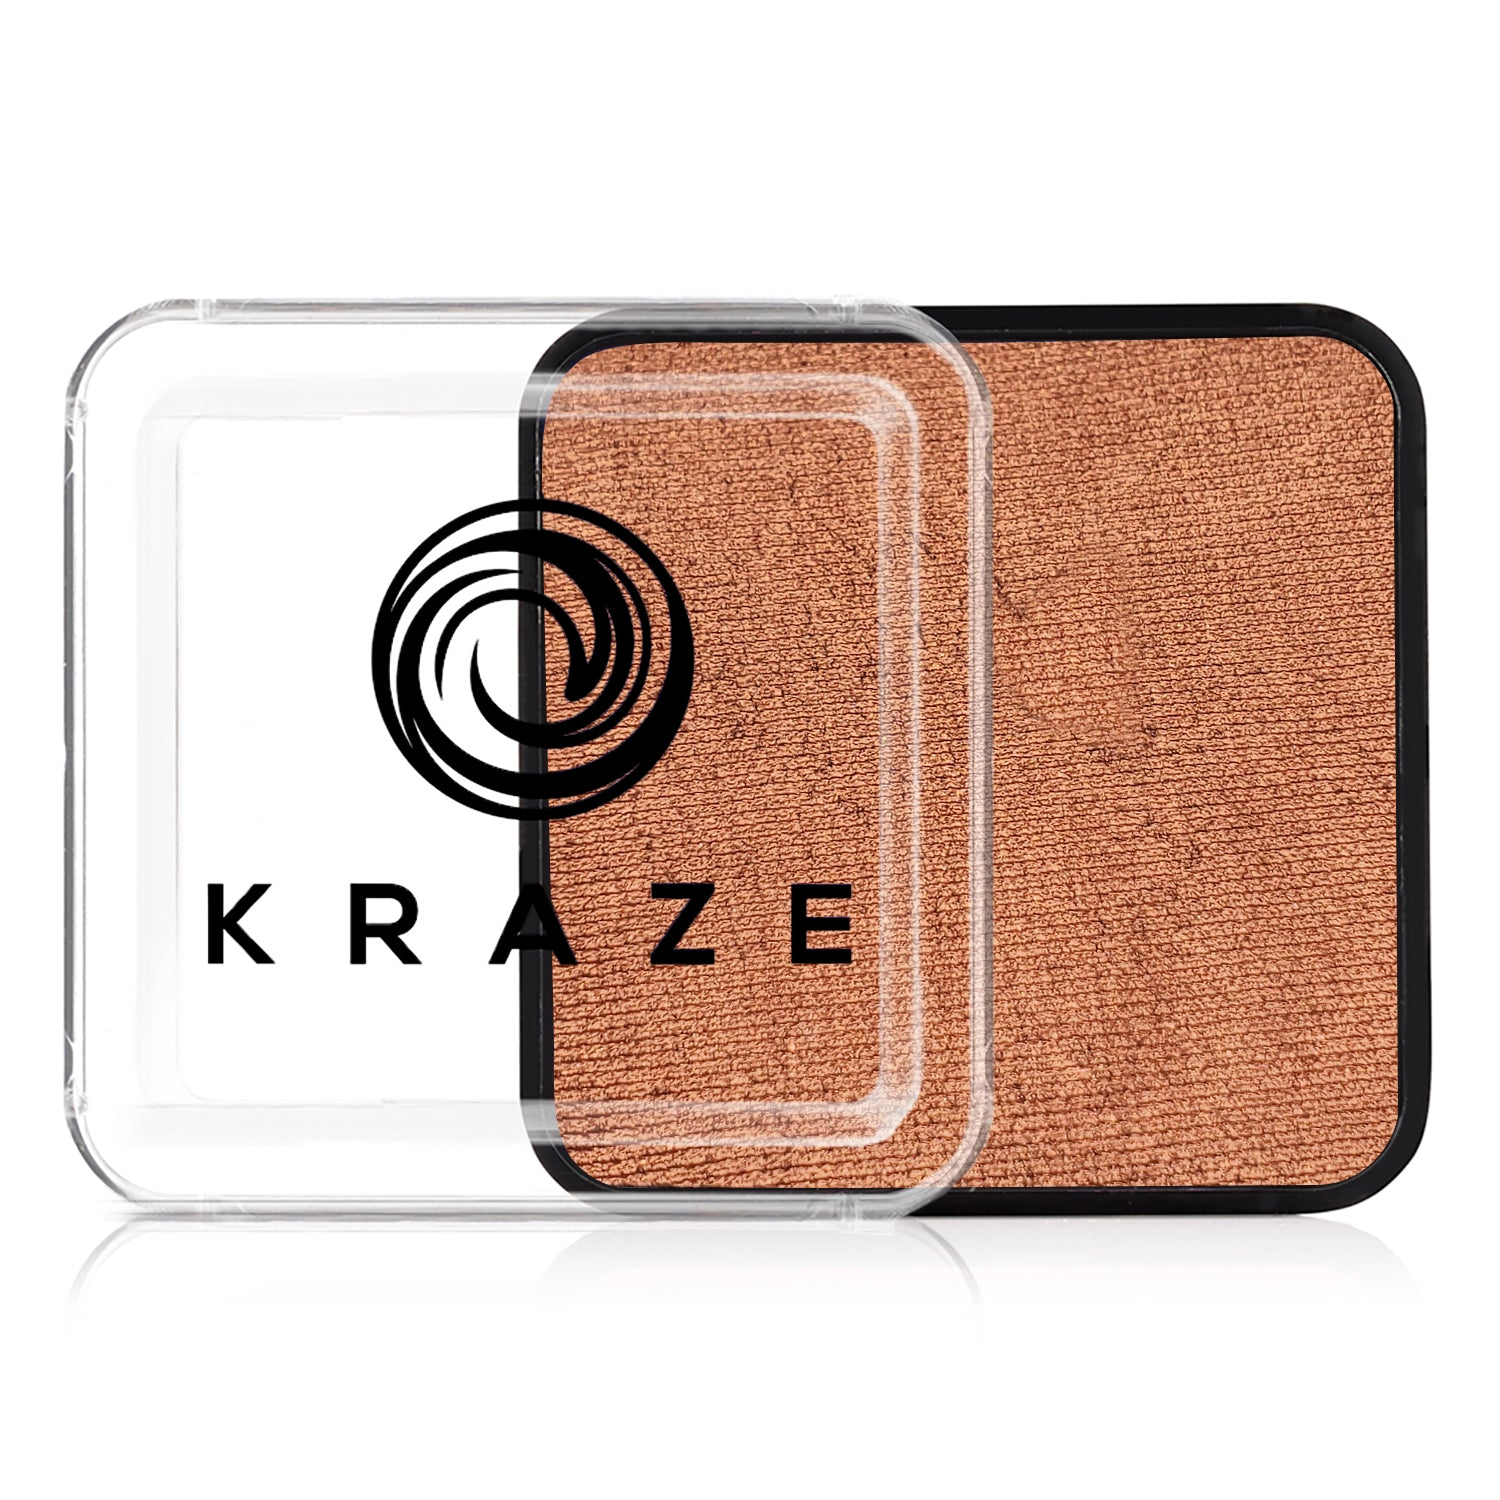 Kraze Metallic Copper Square - 25 gm